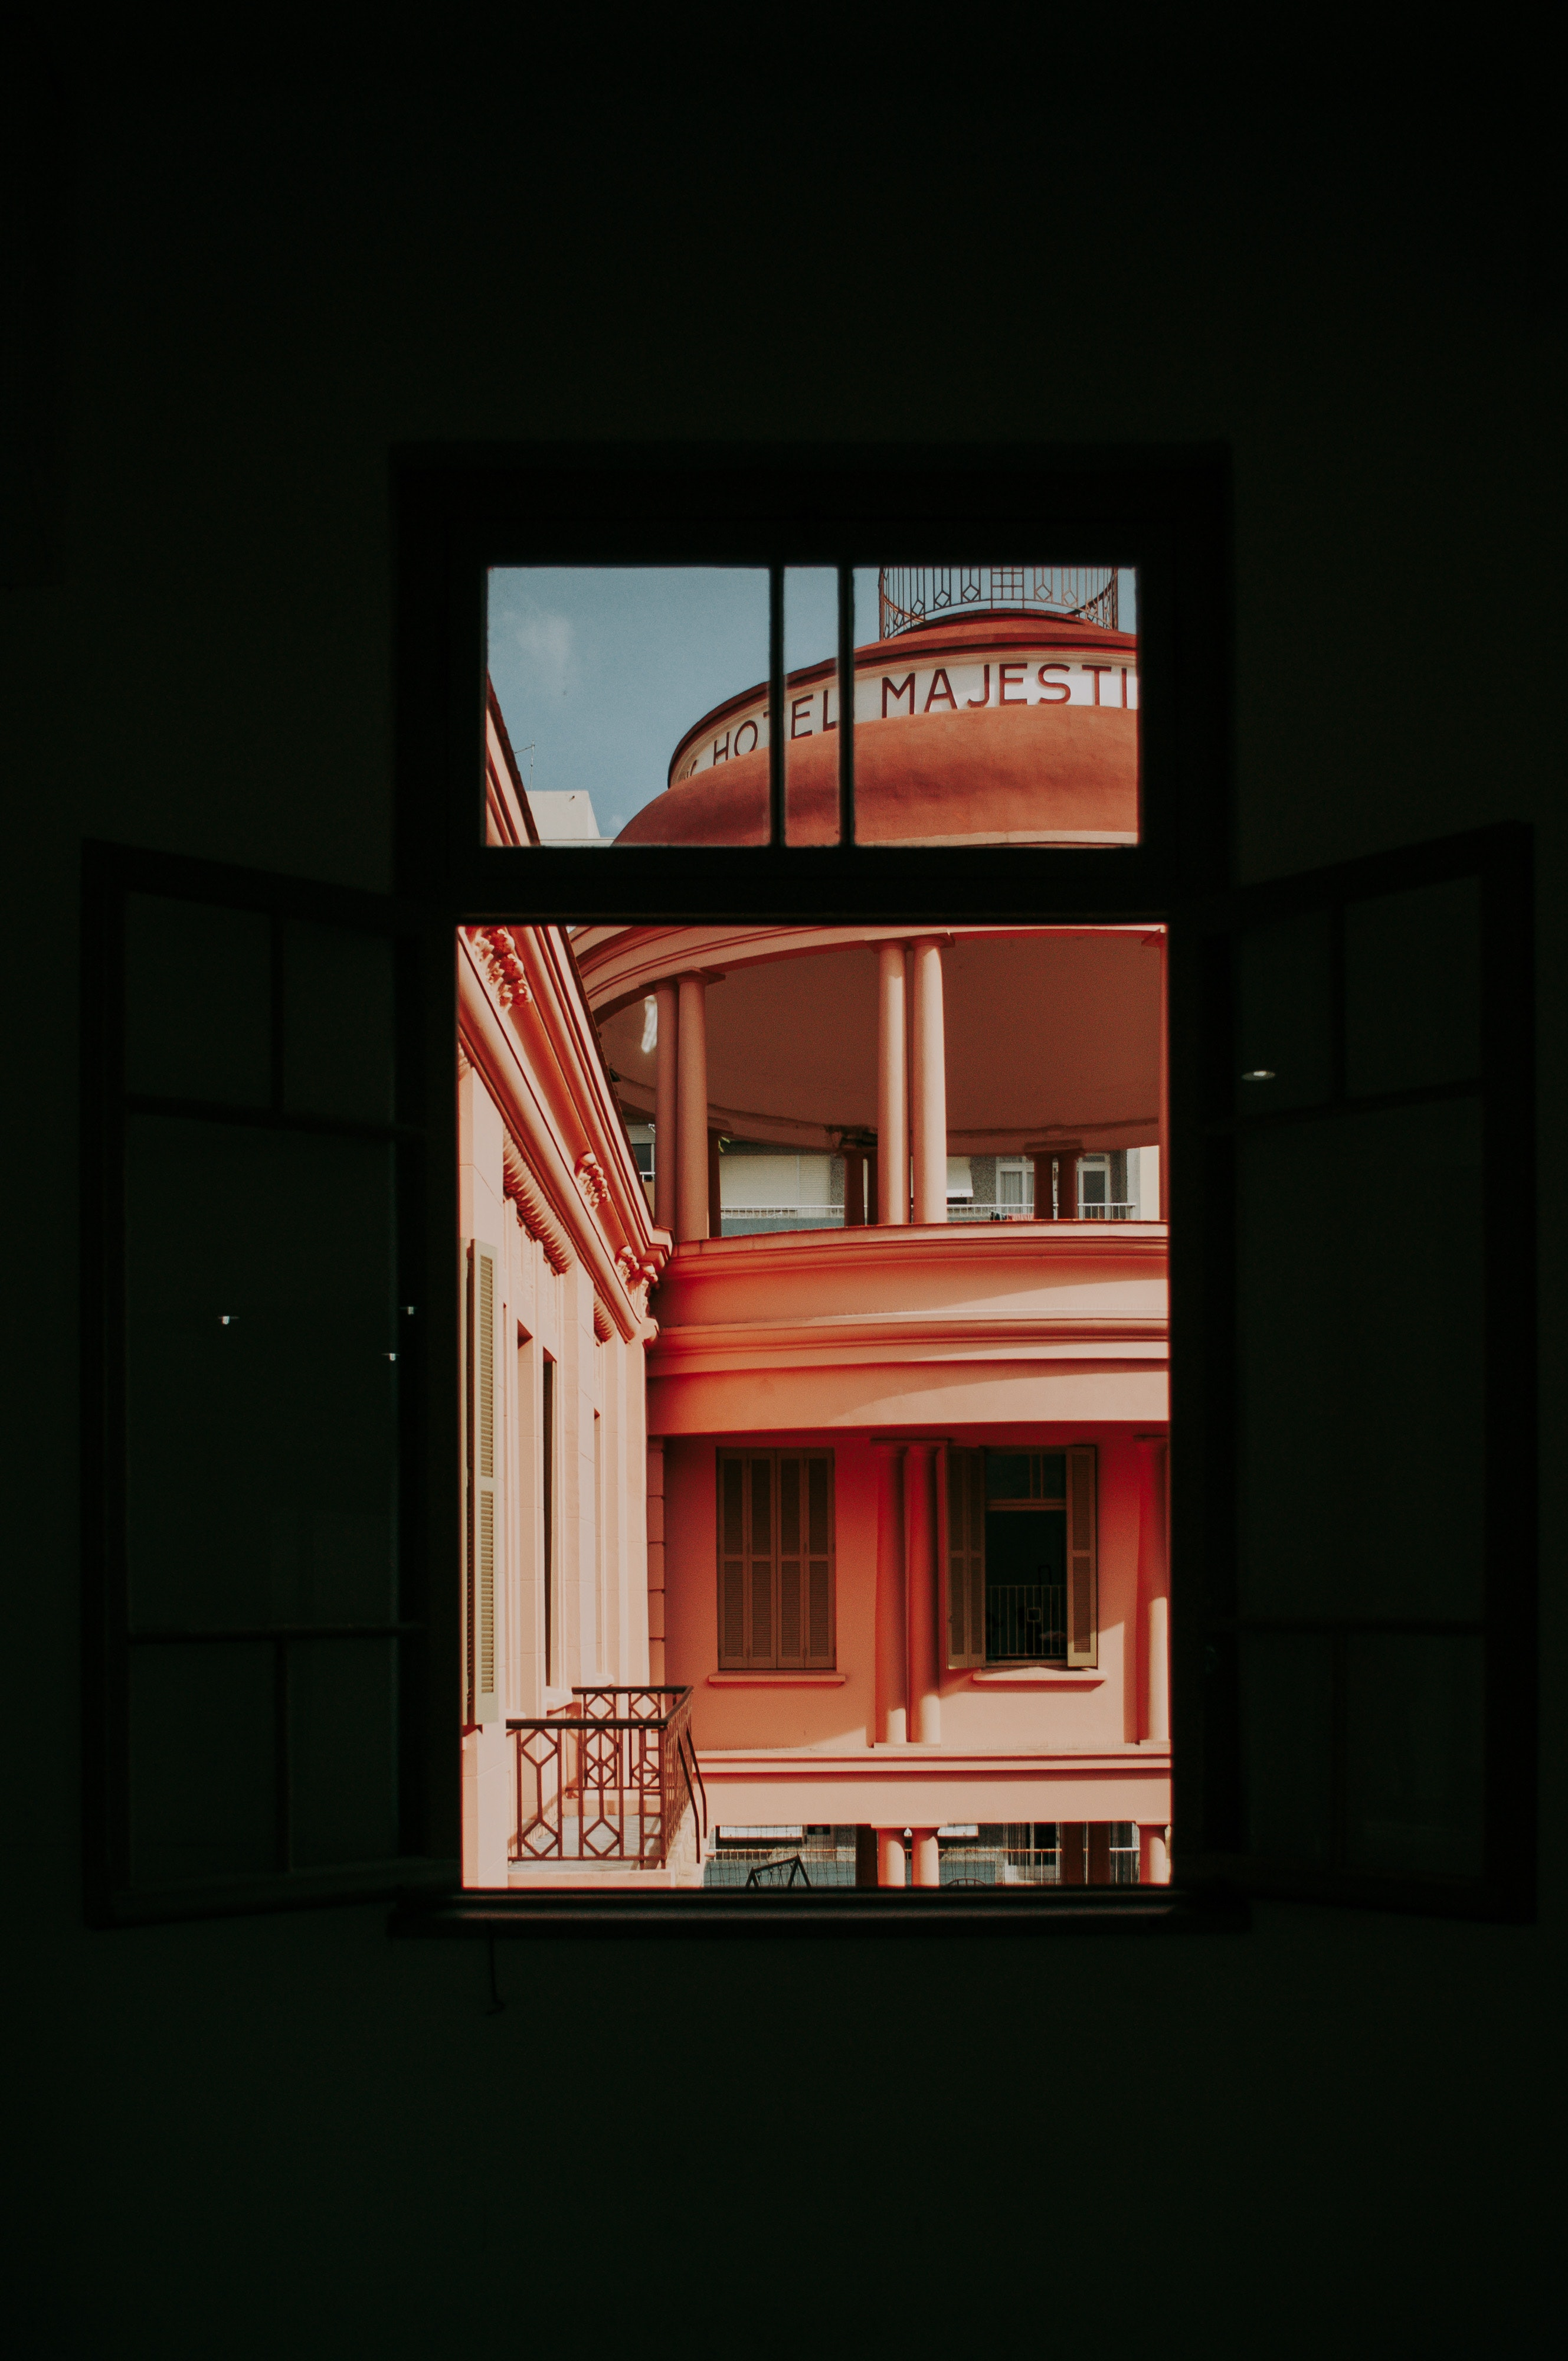 An orange painted building through a window